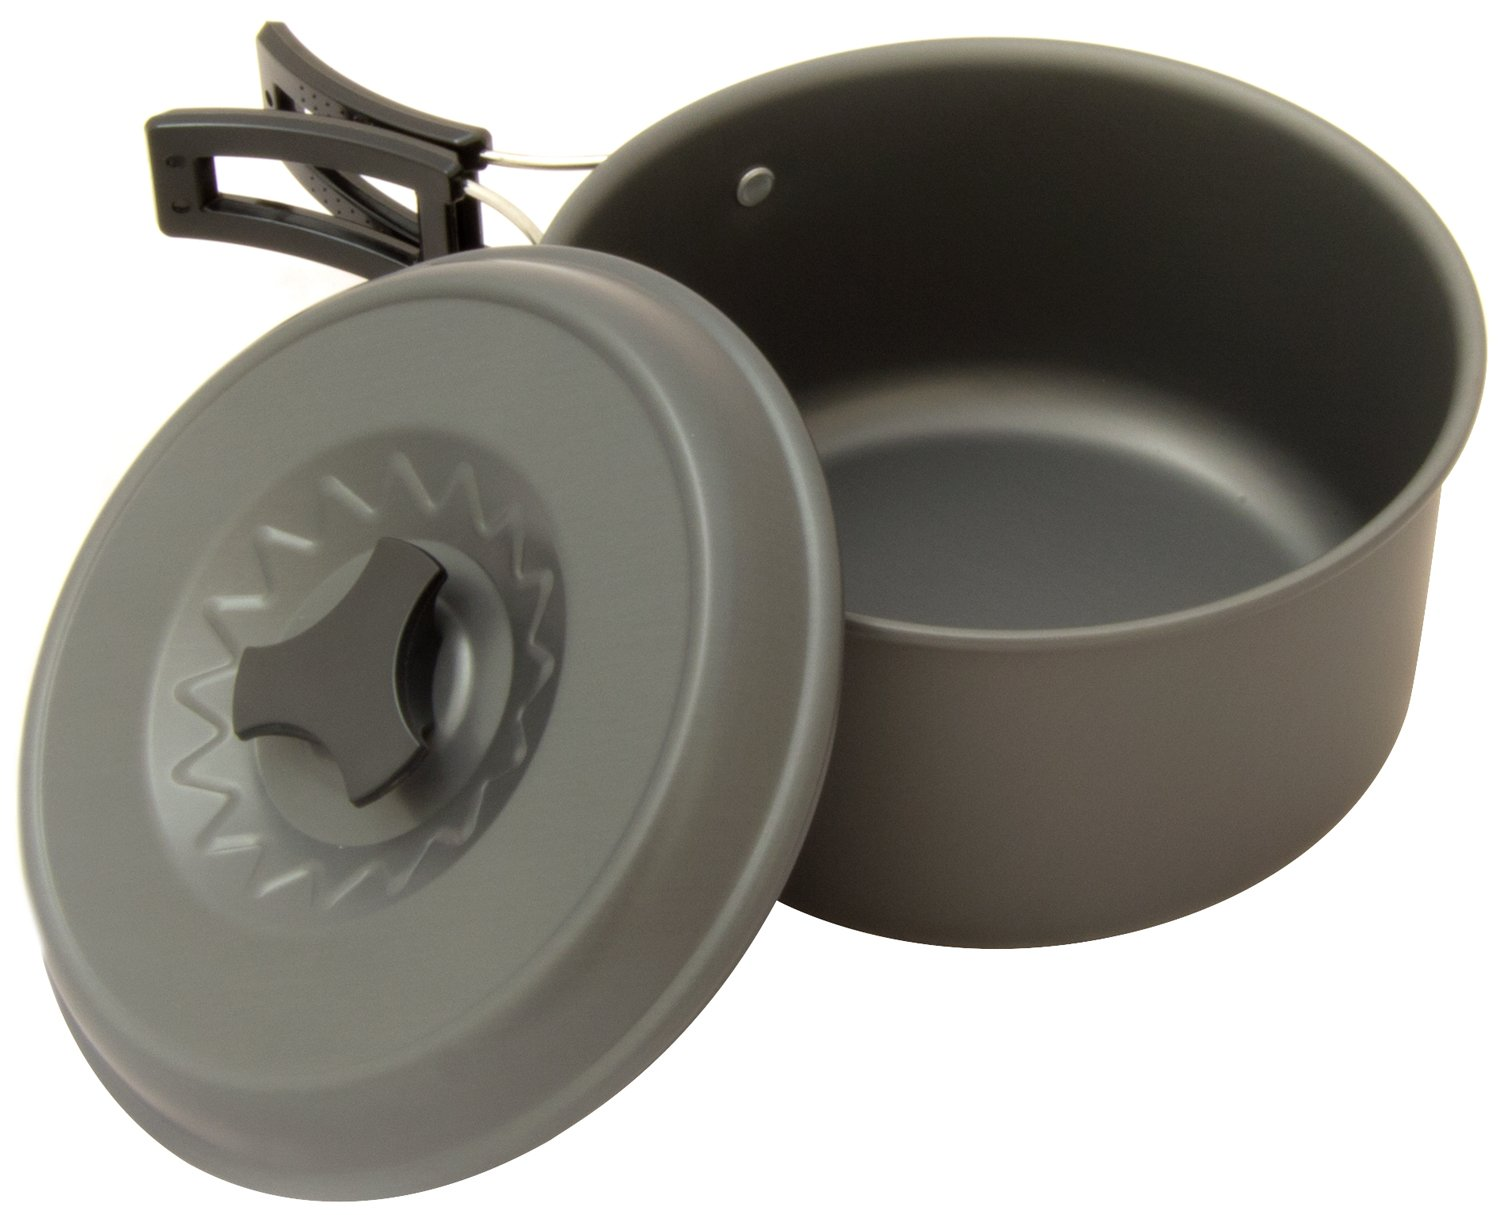 Adtrek 2 Person Camping Cook Set Hard Anodised Aluminium 1L Kettle Includes Frying Pan Chopping Board Sauce Pan Carry Bag Plates